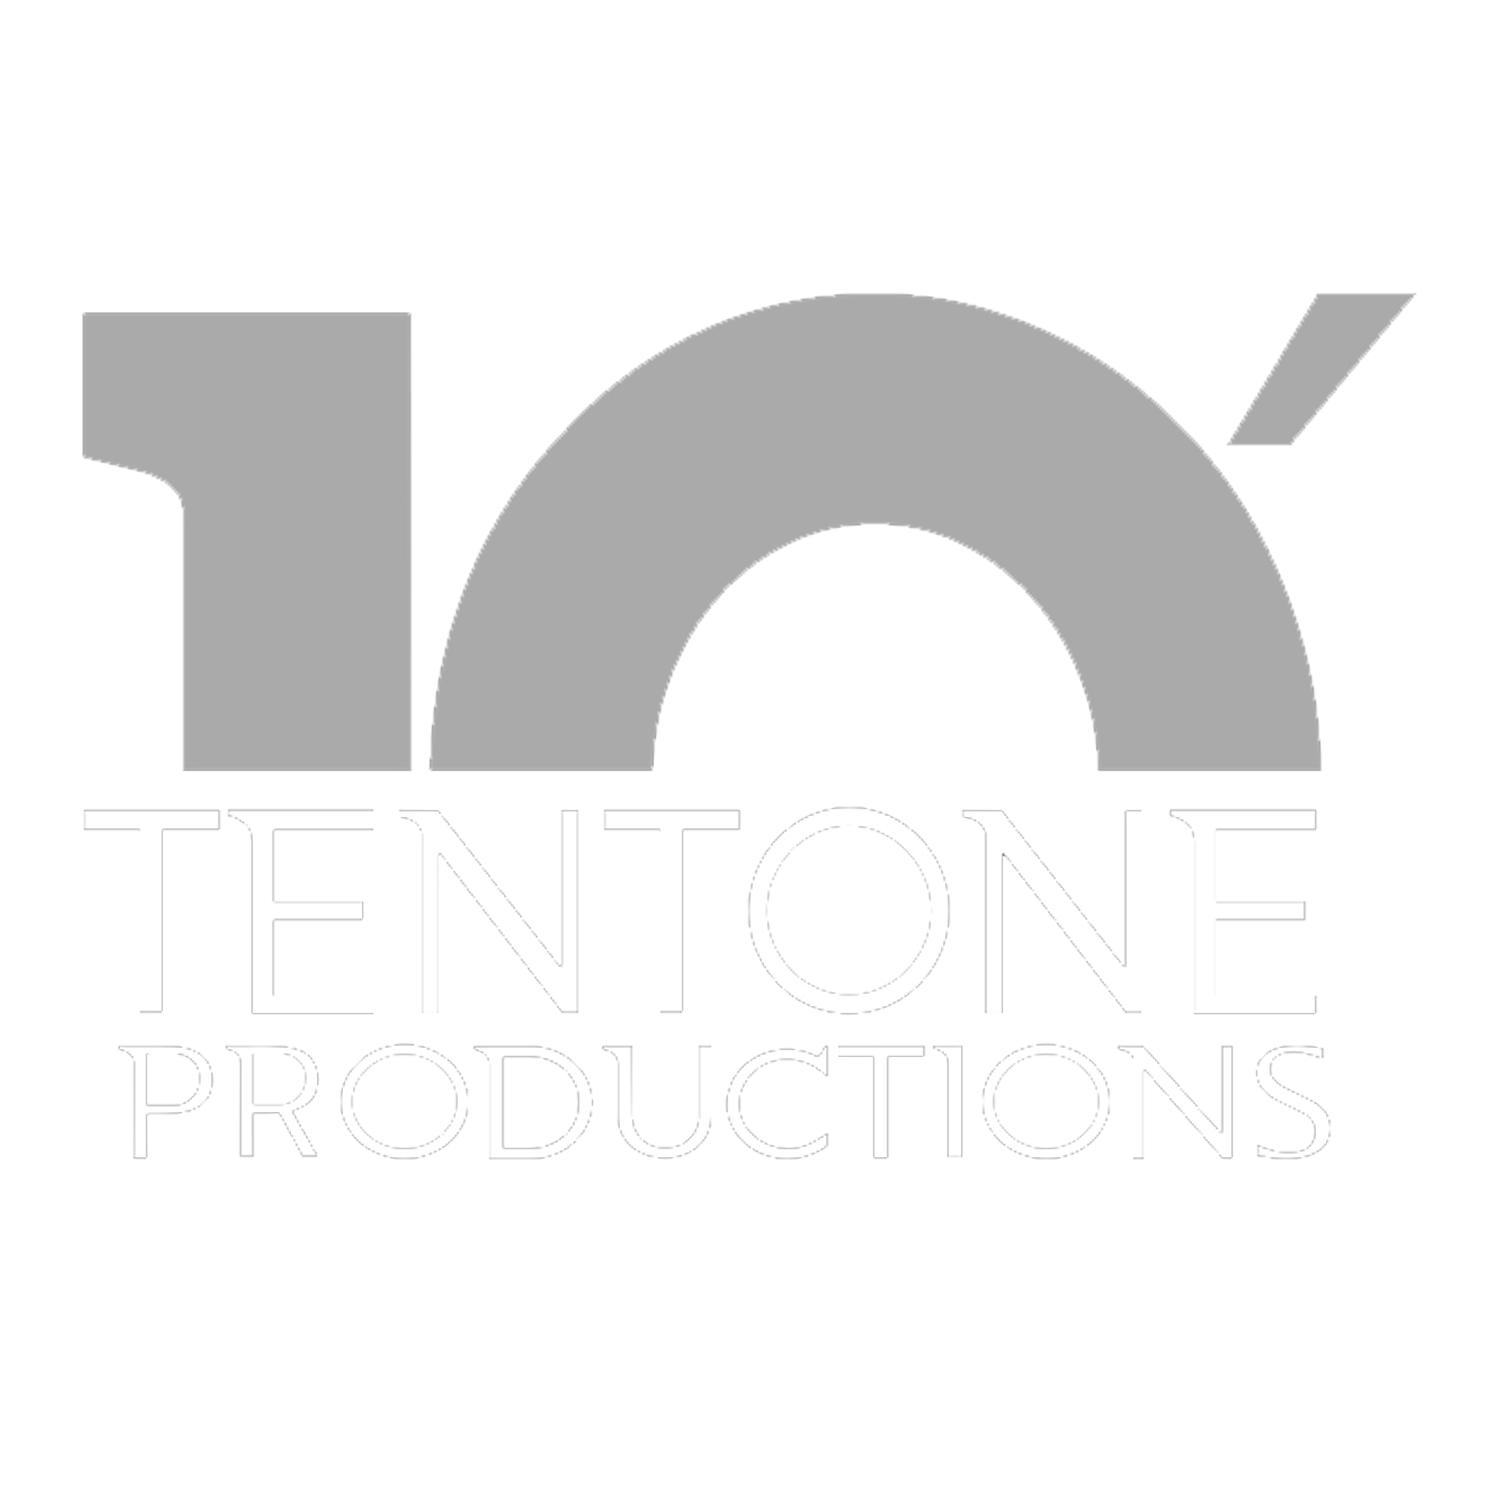 Ten Tone Productions